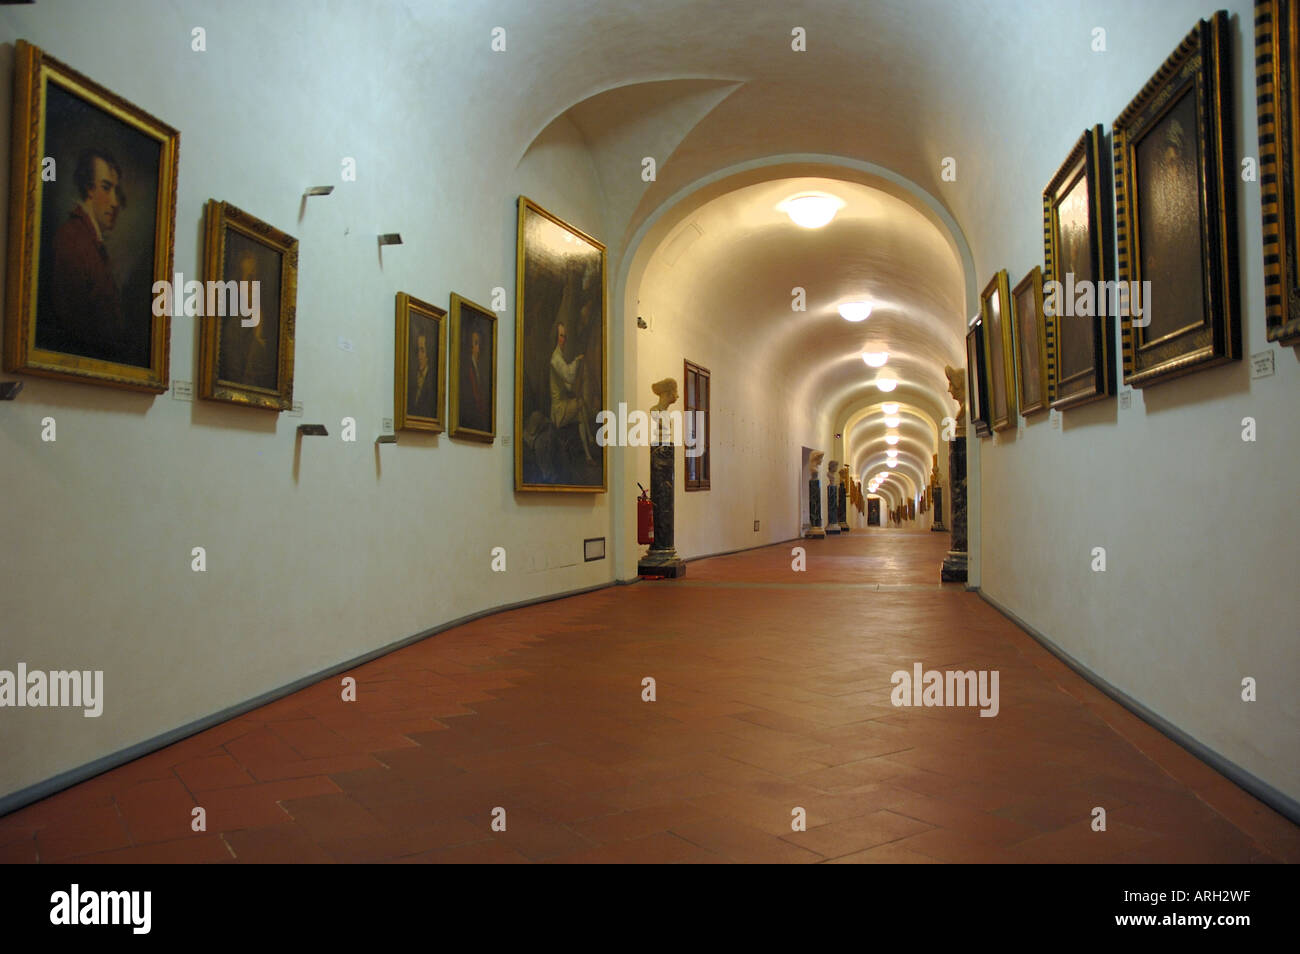 Looking along the Vasari Corridor which links the Uffizi Gallery and Pitti Palace in Florence Stock Photo